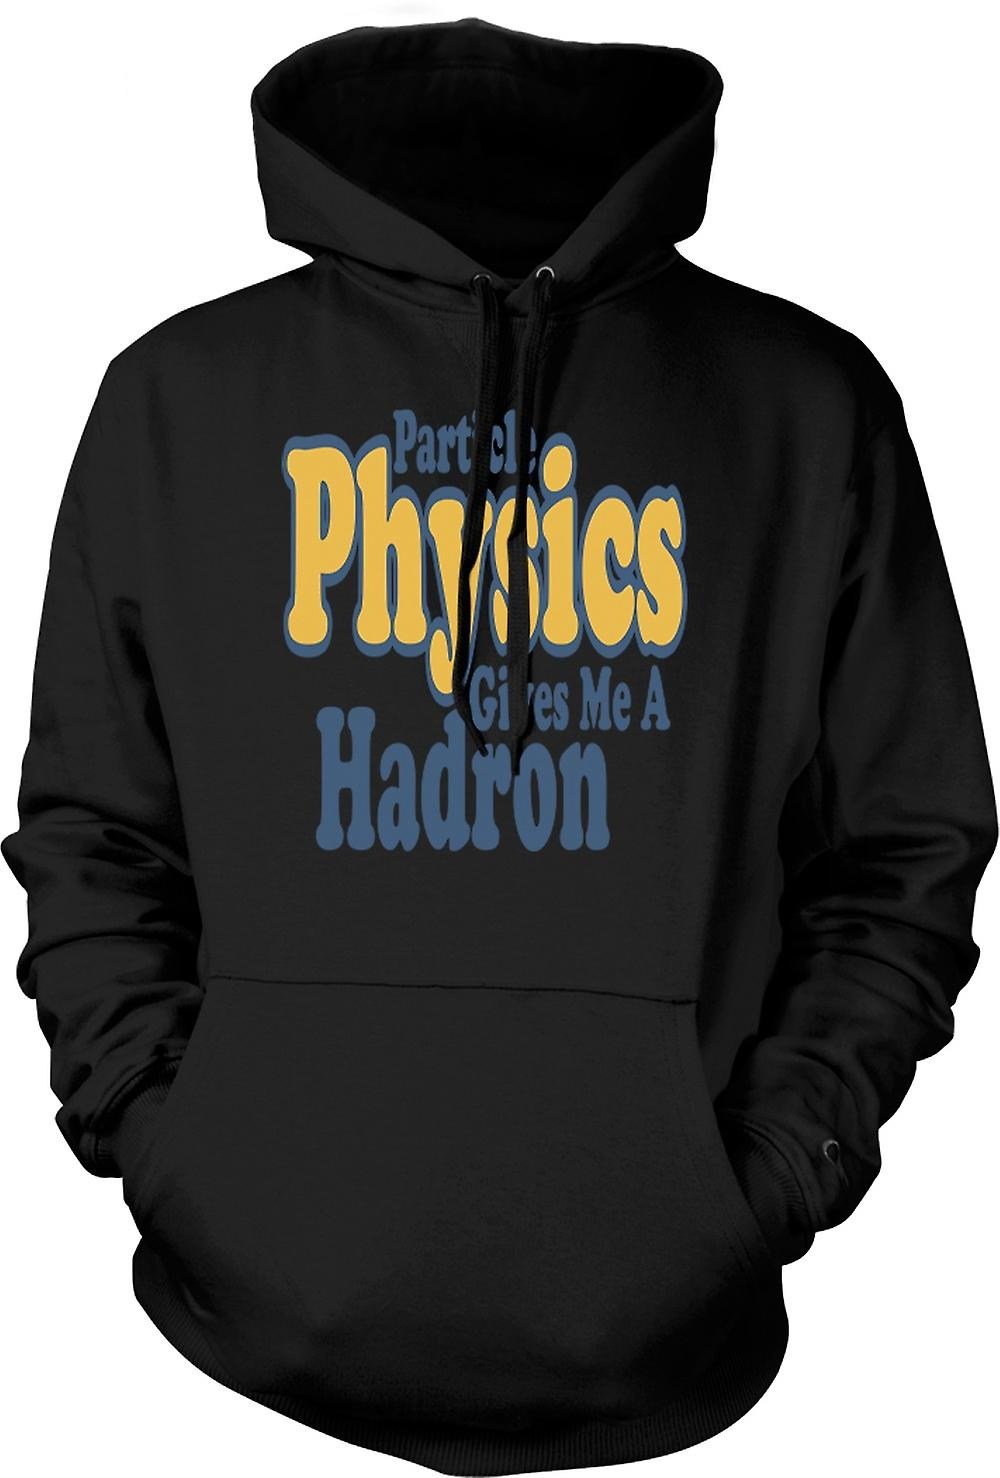 Mens Hoodie - Particle Physics Gives Me A Hadron - Quote